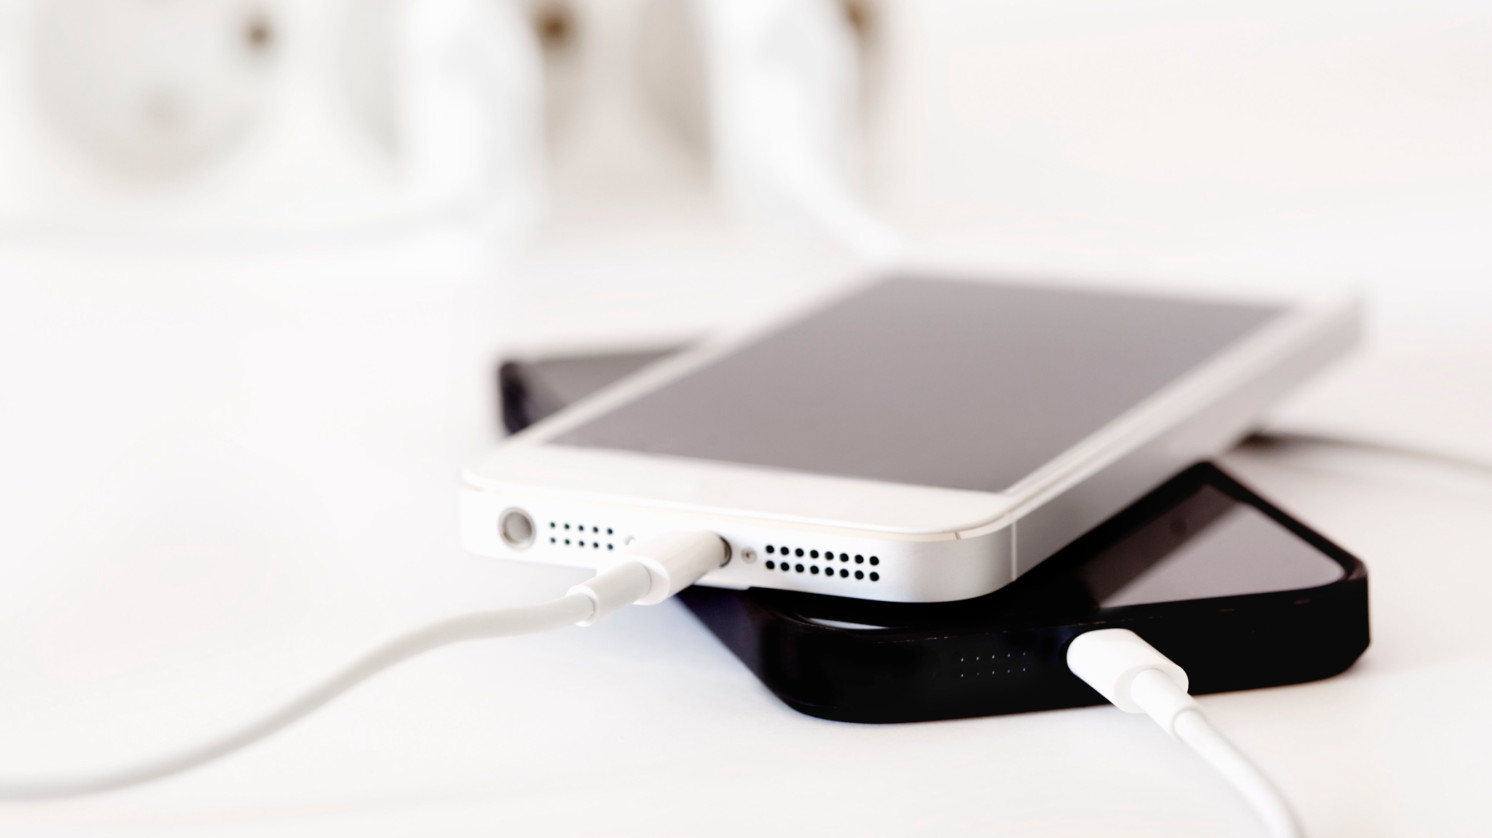 Basic rules for charging the iPhone